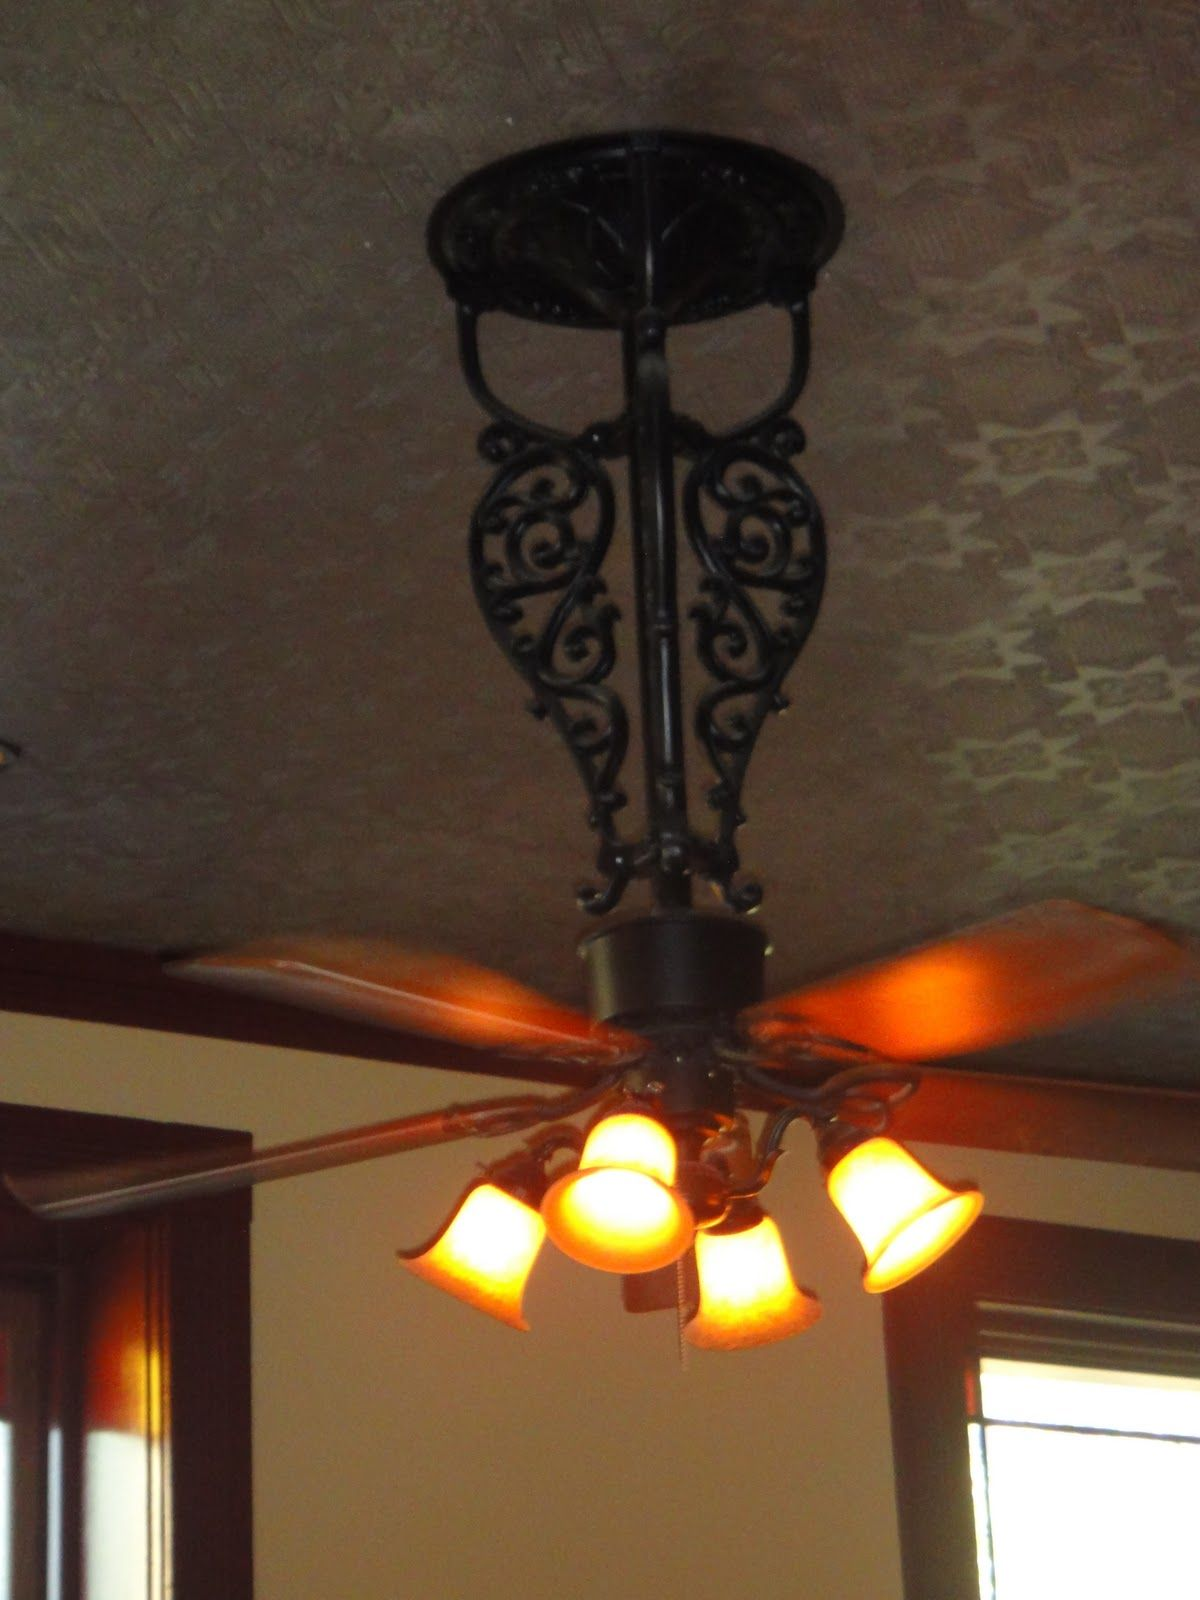 Wrought iron ceiling fan for the home pinterest wrought iron wrought iron ceiling fan aloadofball Gallery